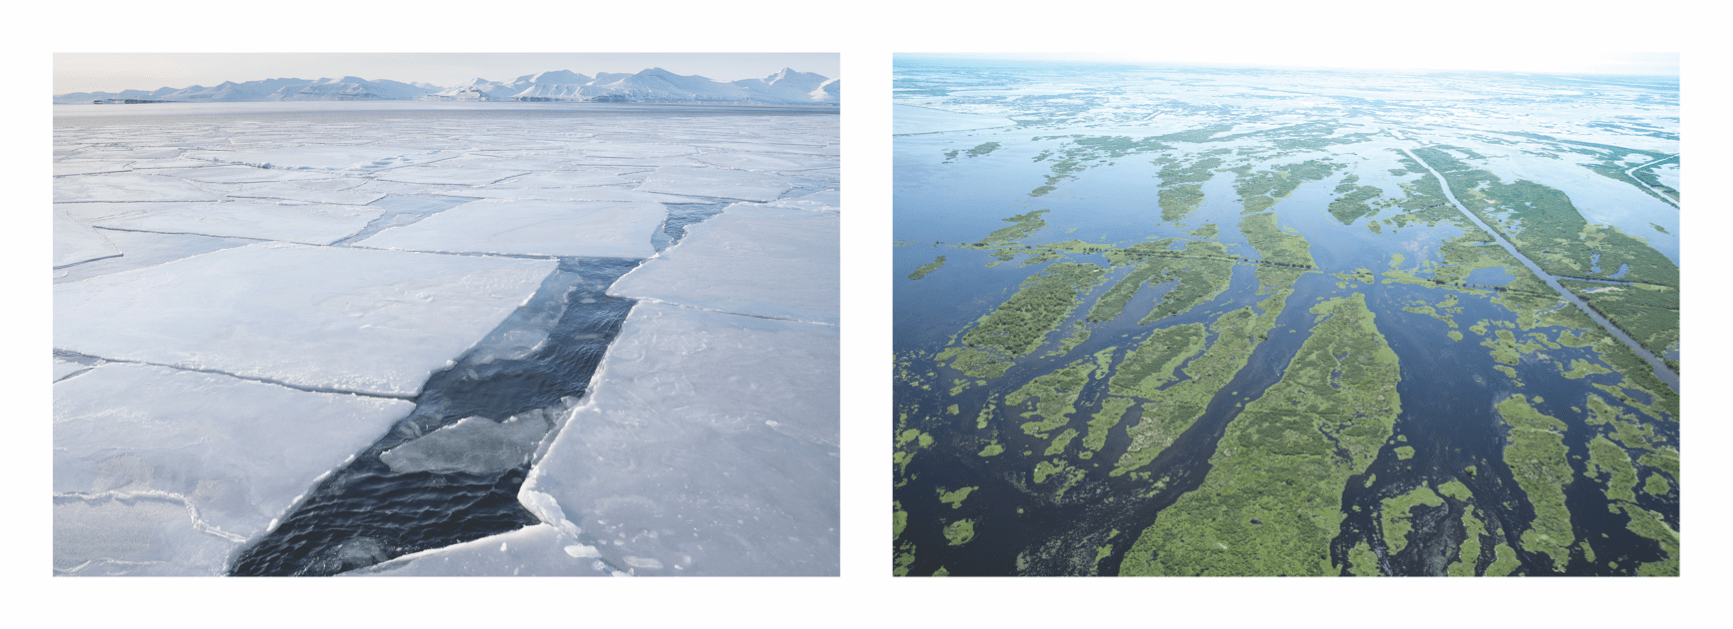 two images, one of giant ice sheets splitting apart and flooded Louisiana wetlands